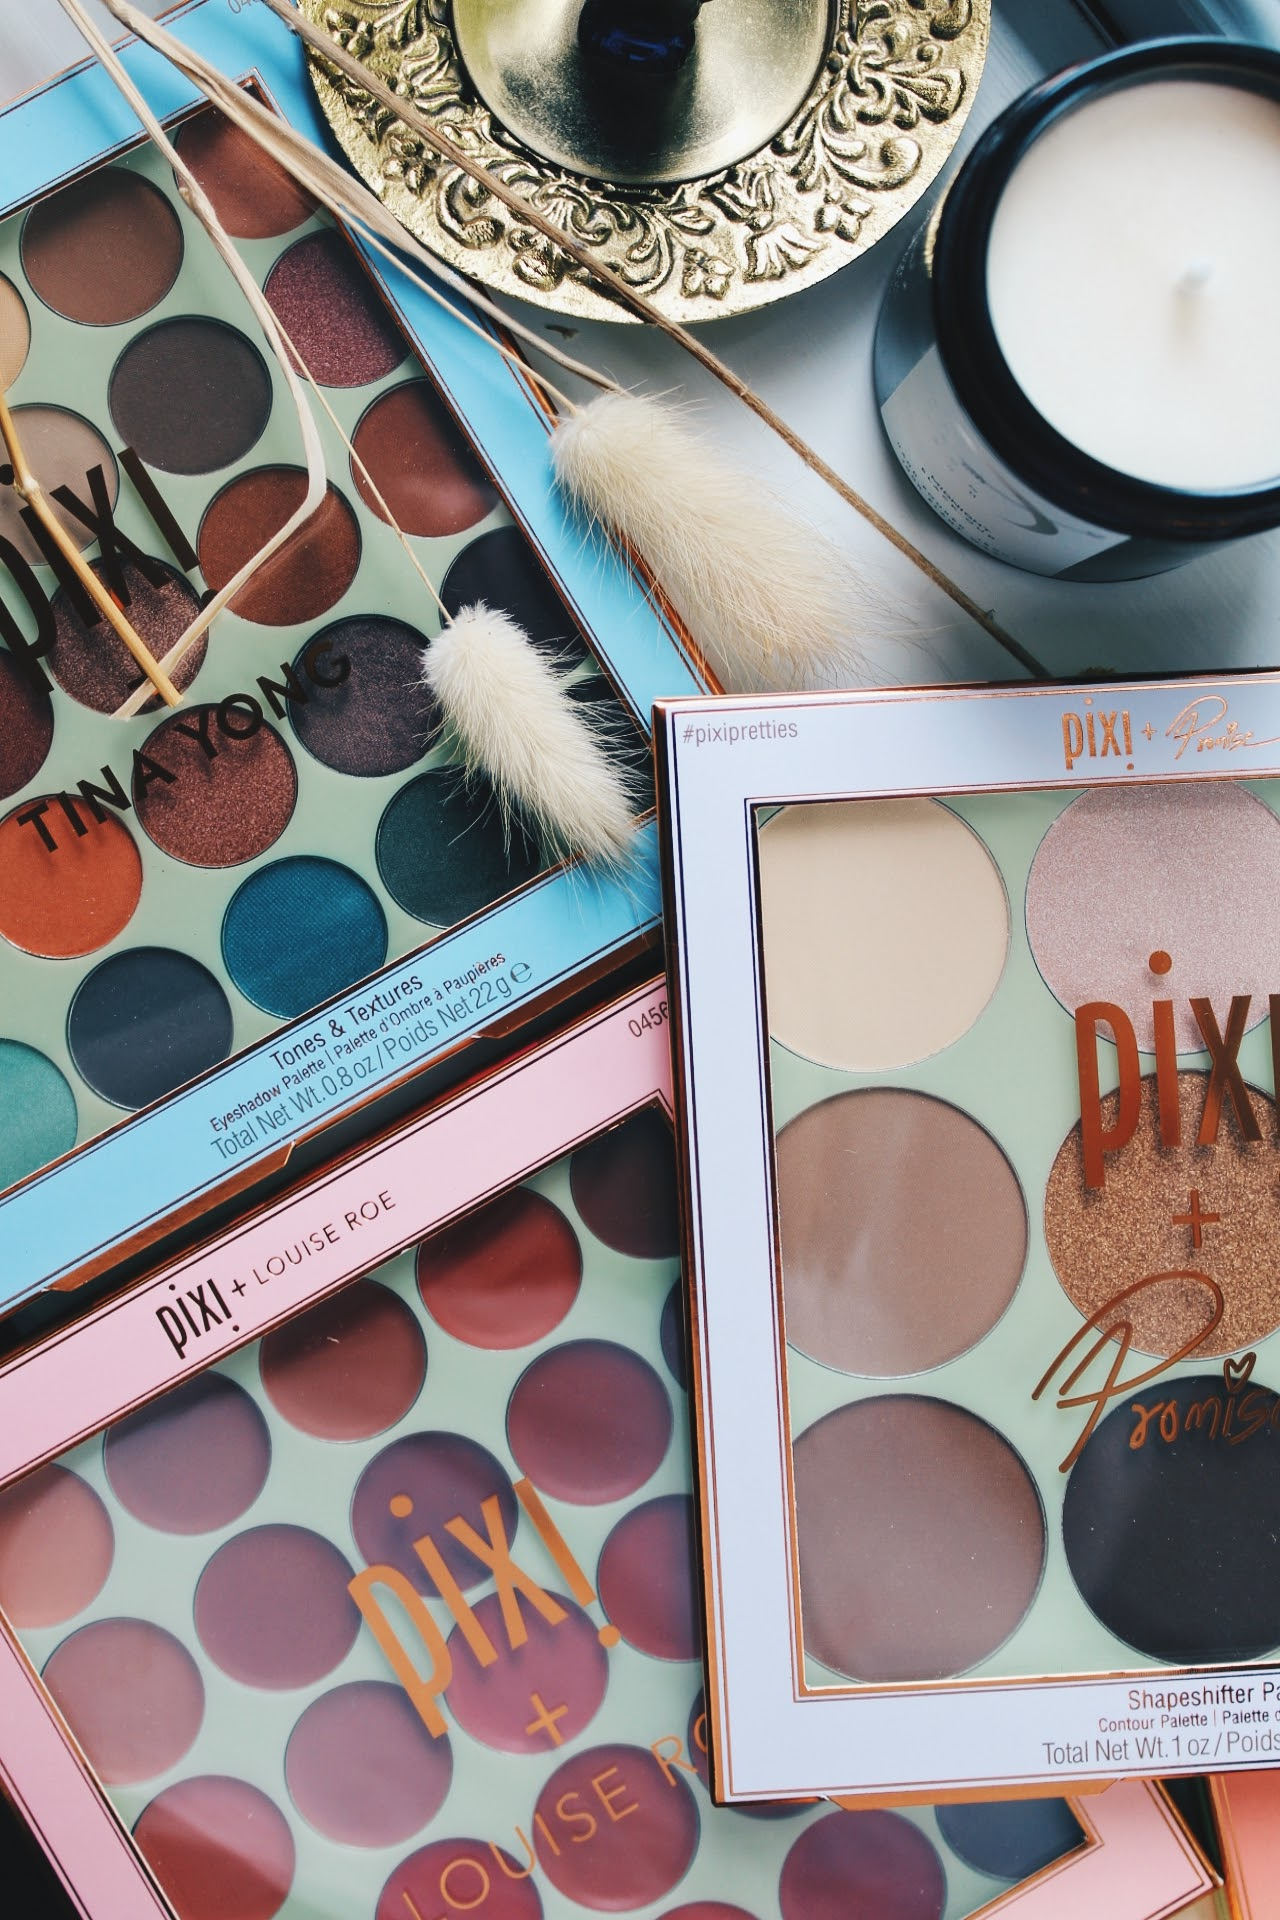 Pixi Pretties - The NEW collection for 2021